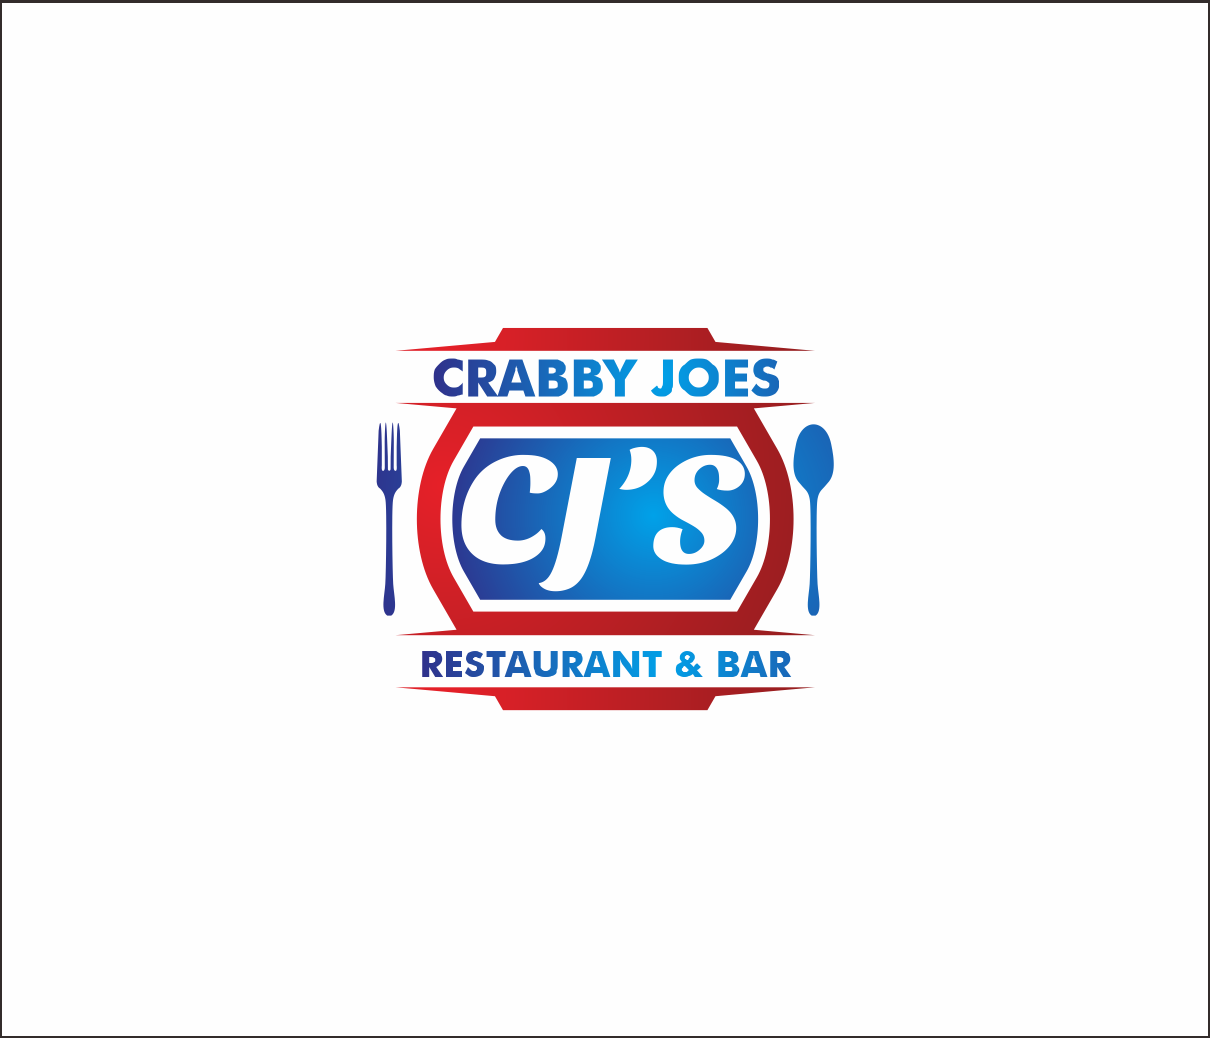 Logo Design by Armada Jamaluddin - Entry No. 83 in the Logo Design Contest Inspiring Logo Design for Cj's.